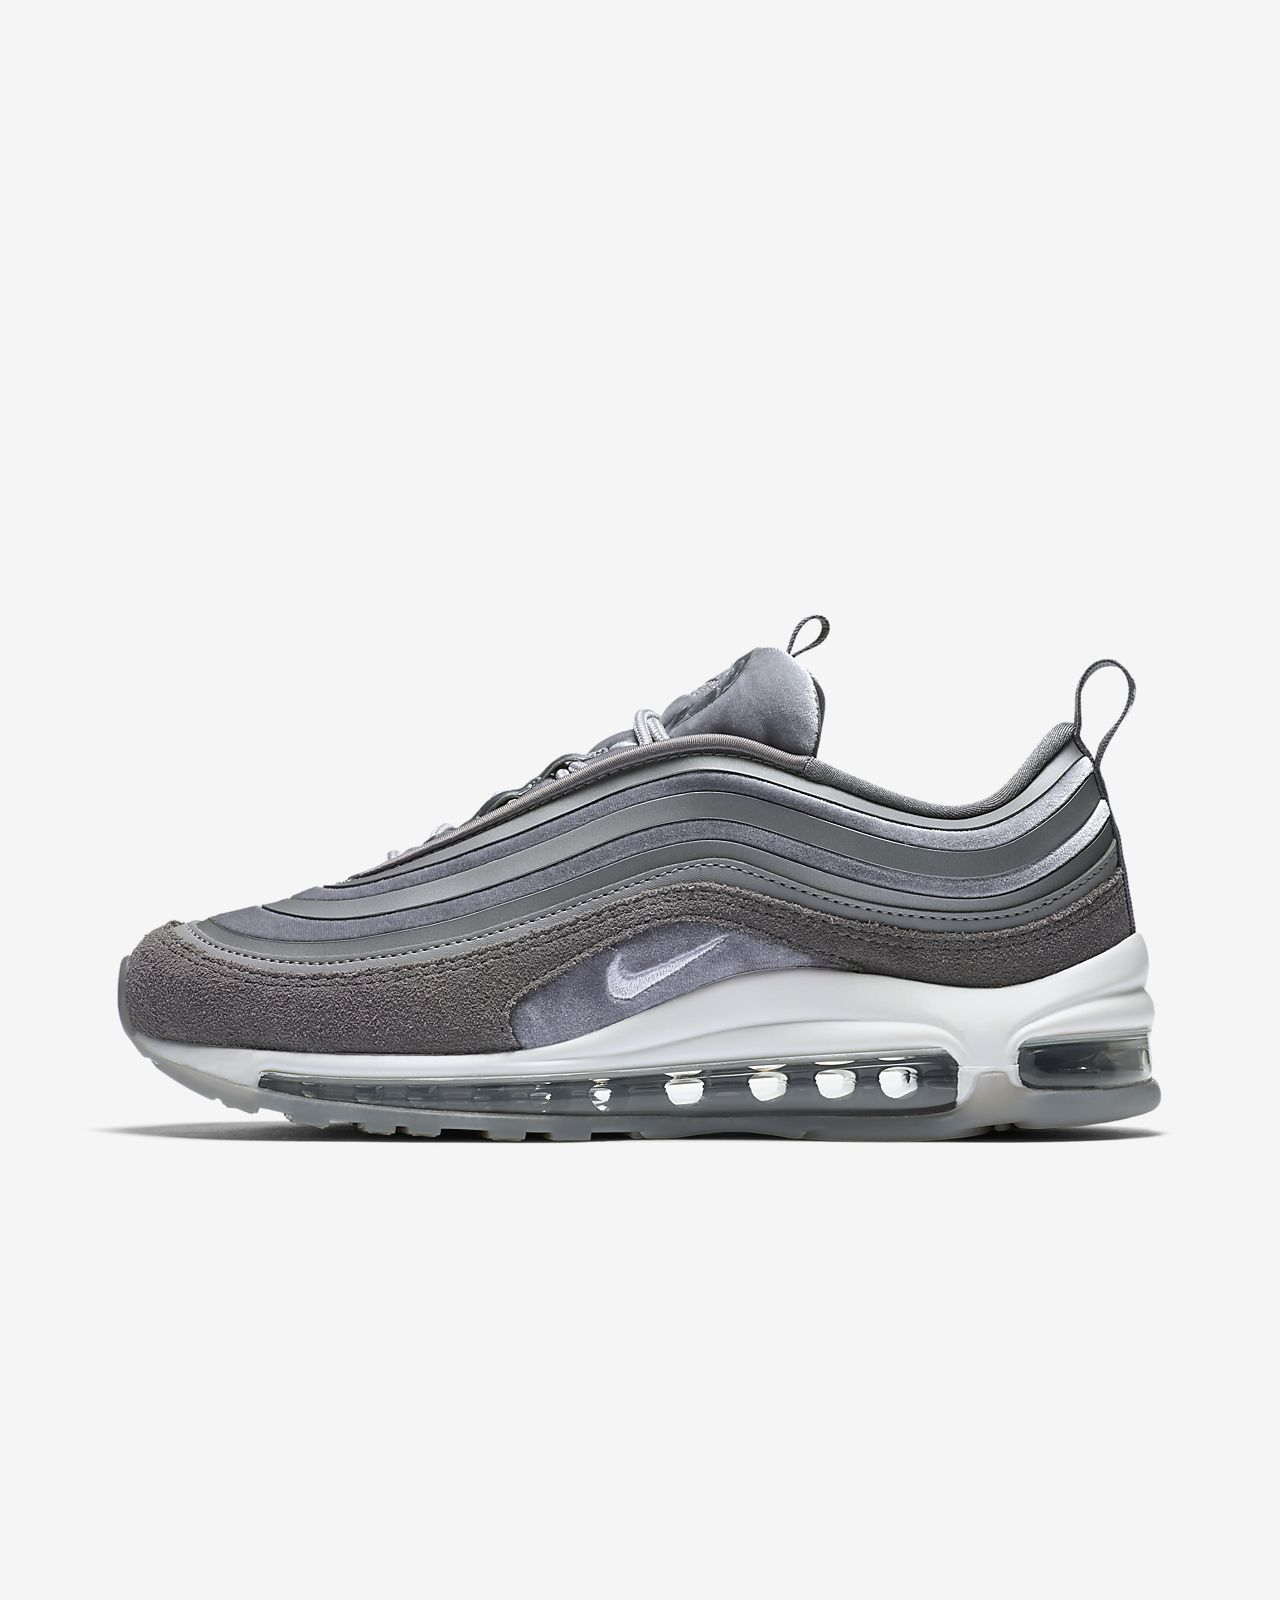 Nike Air Max 97 Robes, Plus De La Femme